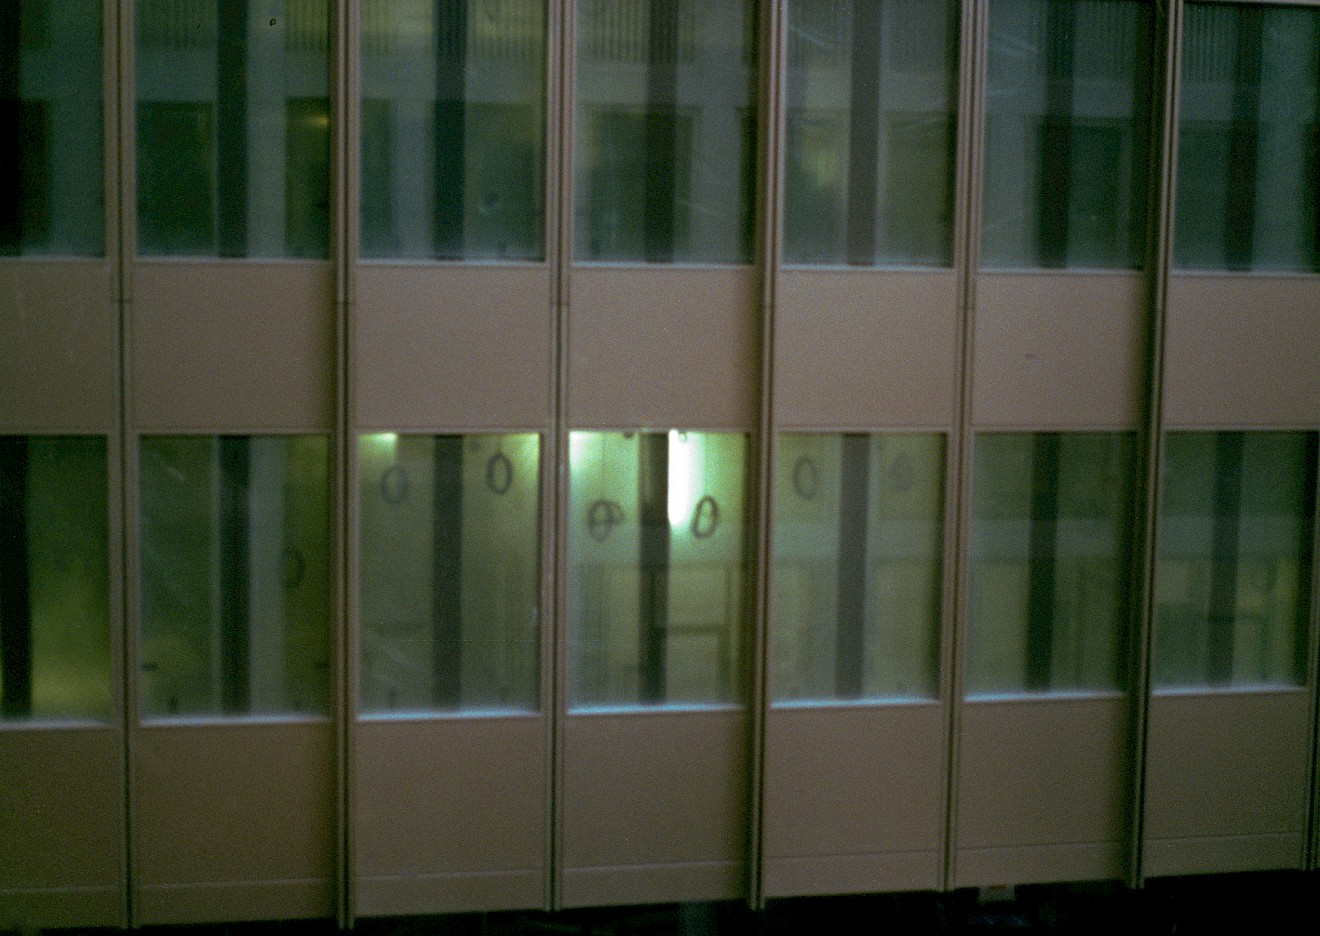 Rosario Aninat, Office Building, 2020, 35 mm analogue photograph, © and courtesy of the artist and L187